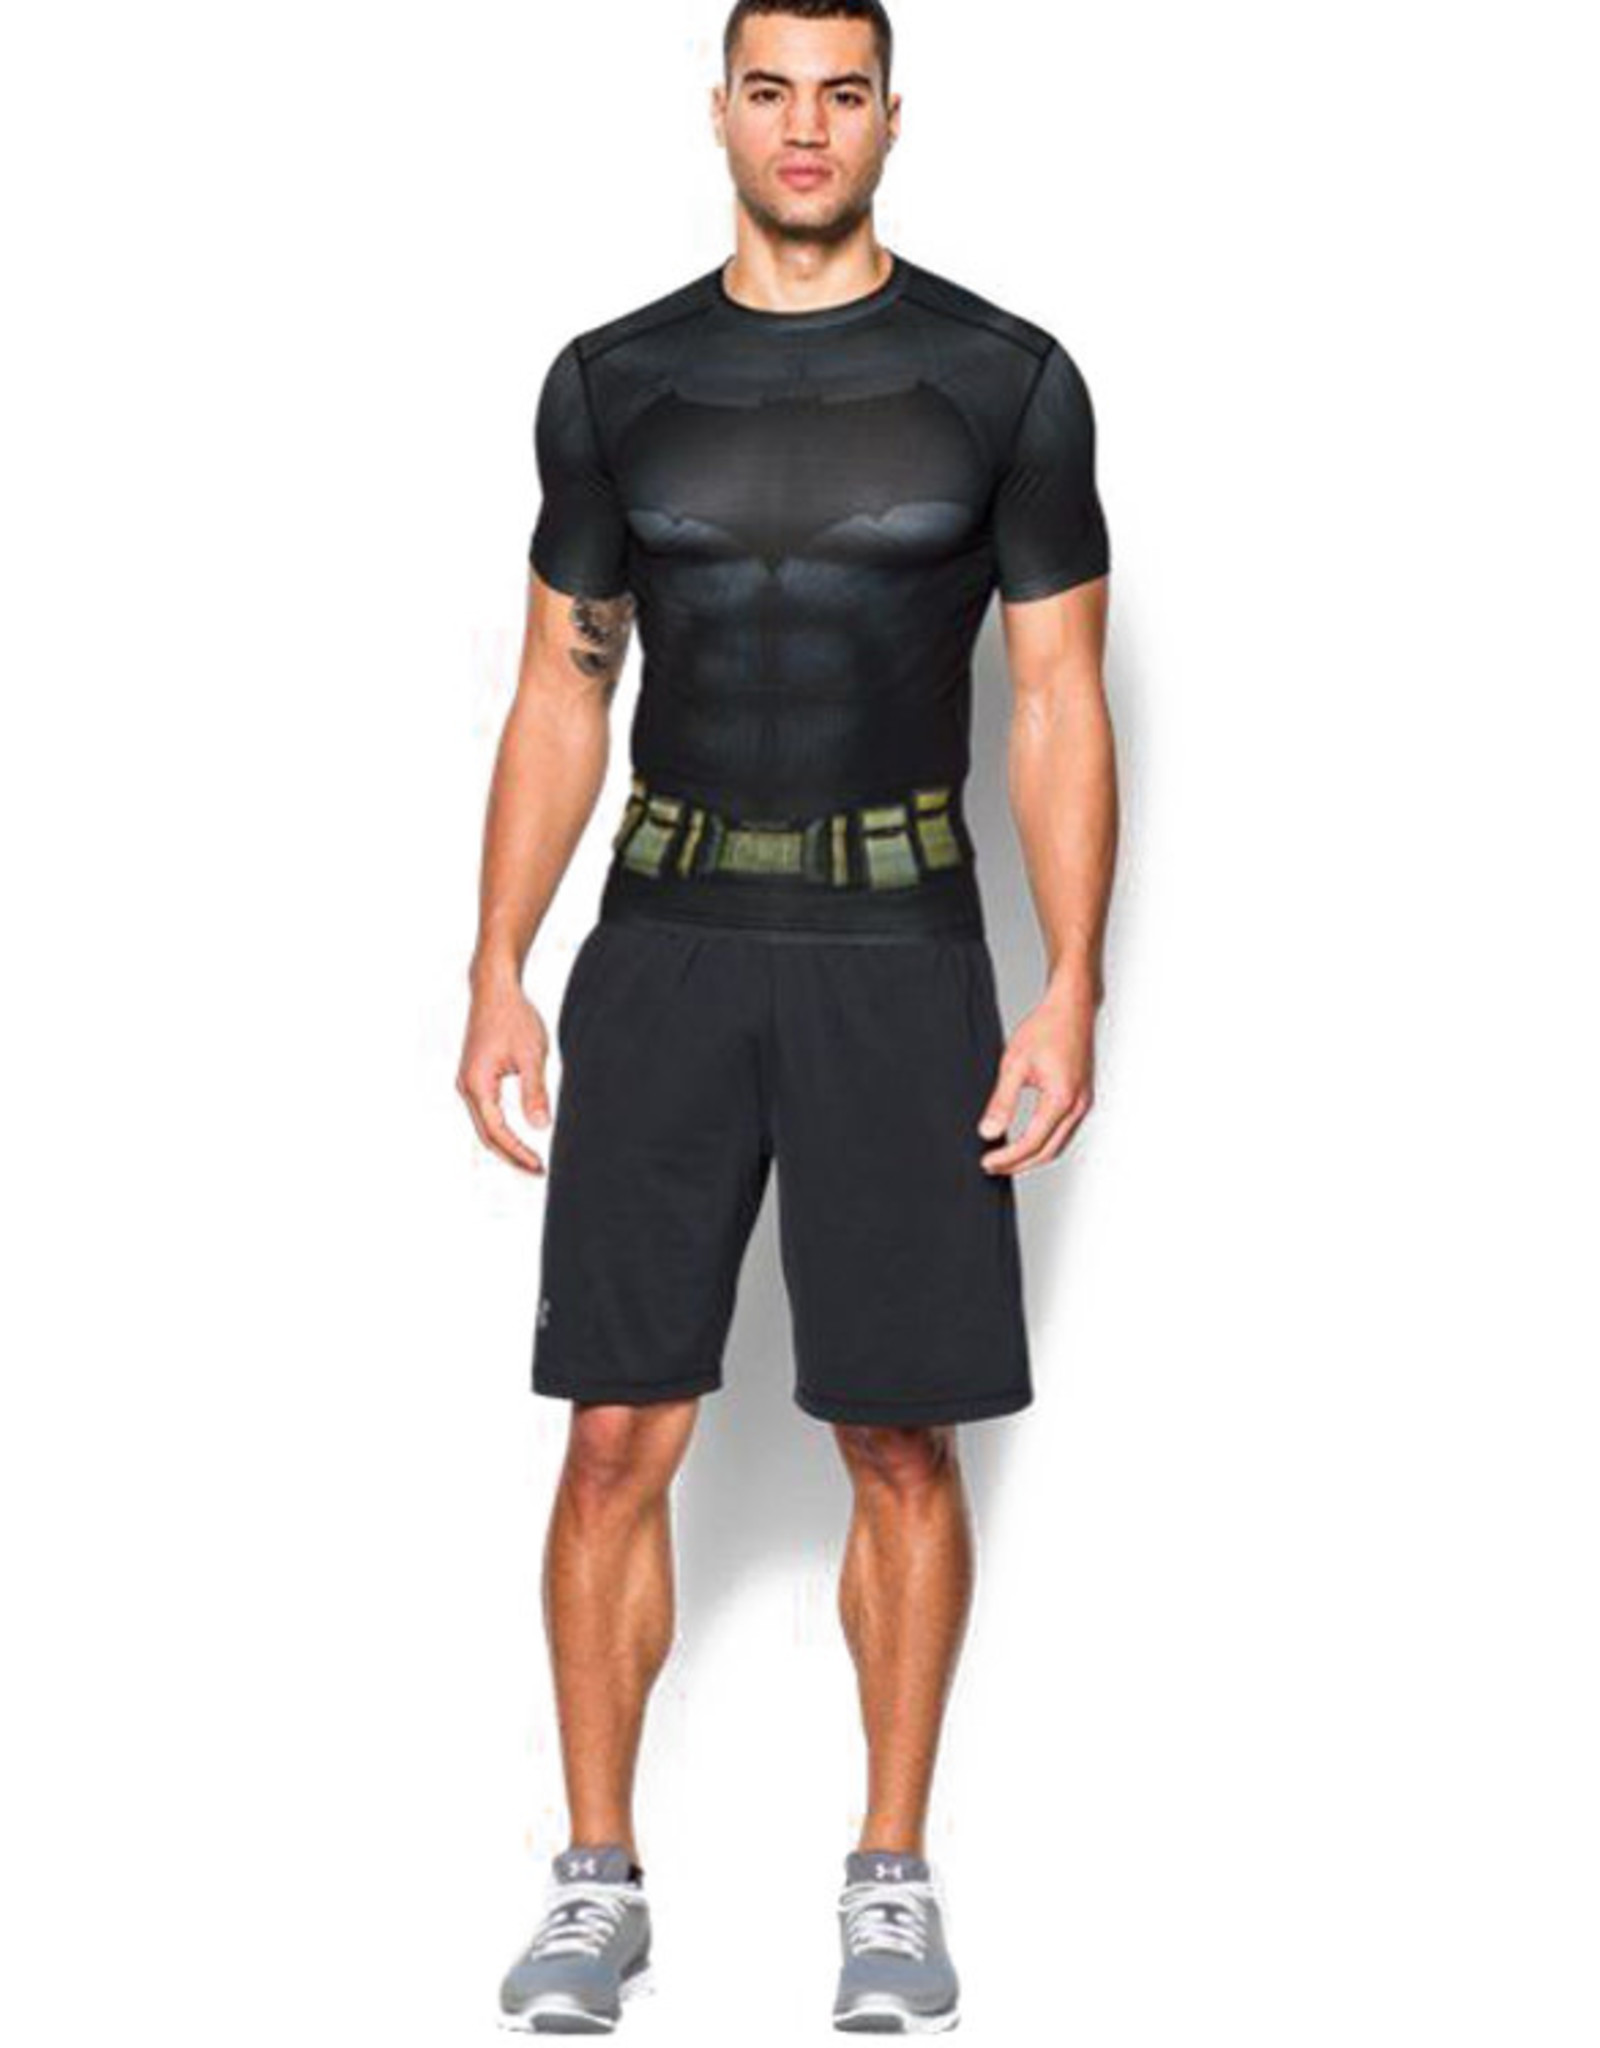 Under Armour Compression SS Batman Suit